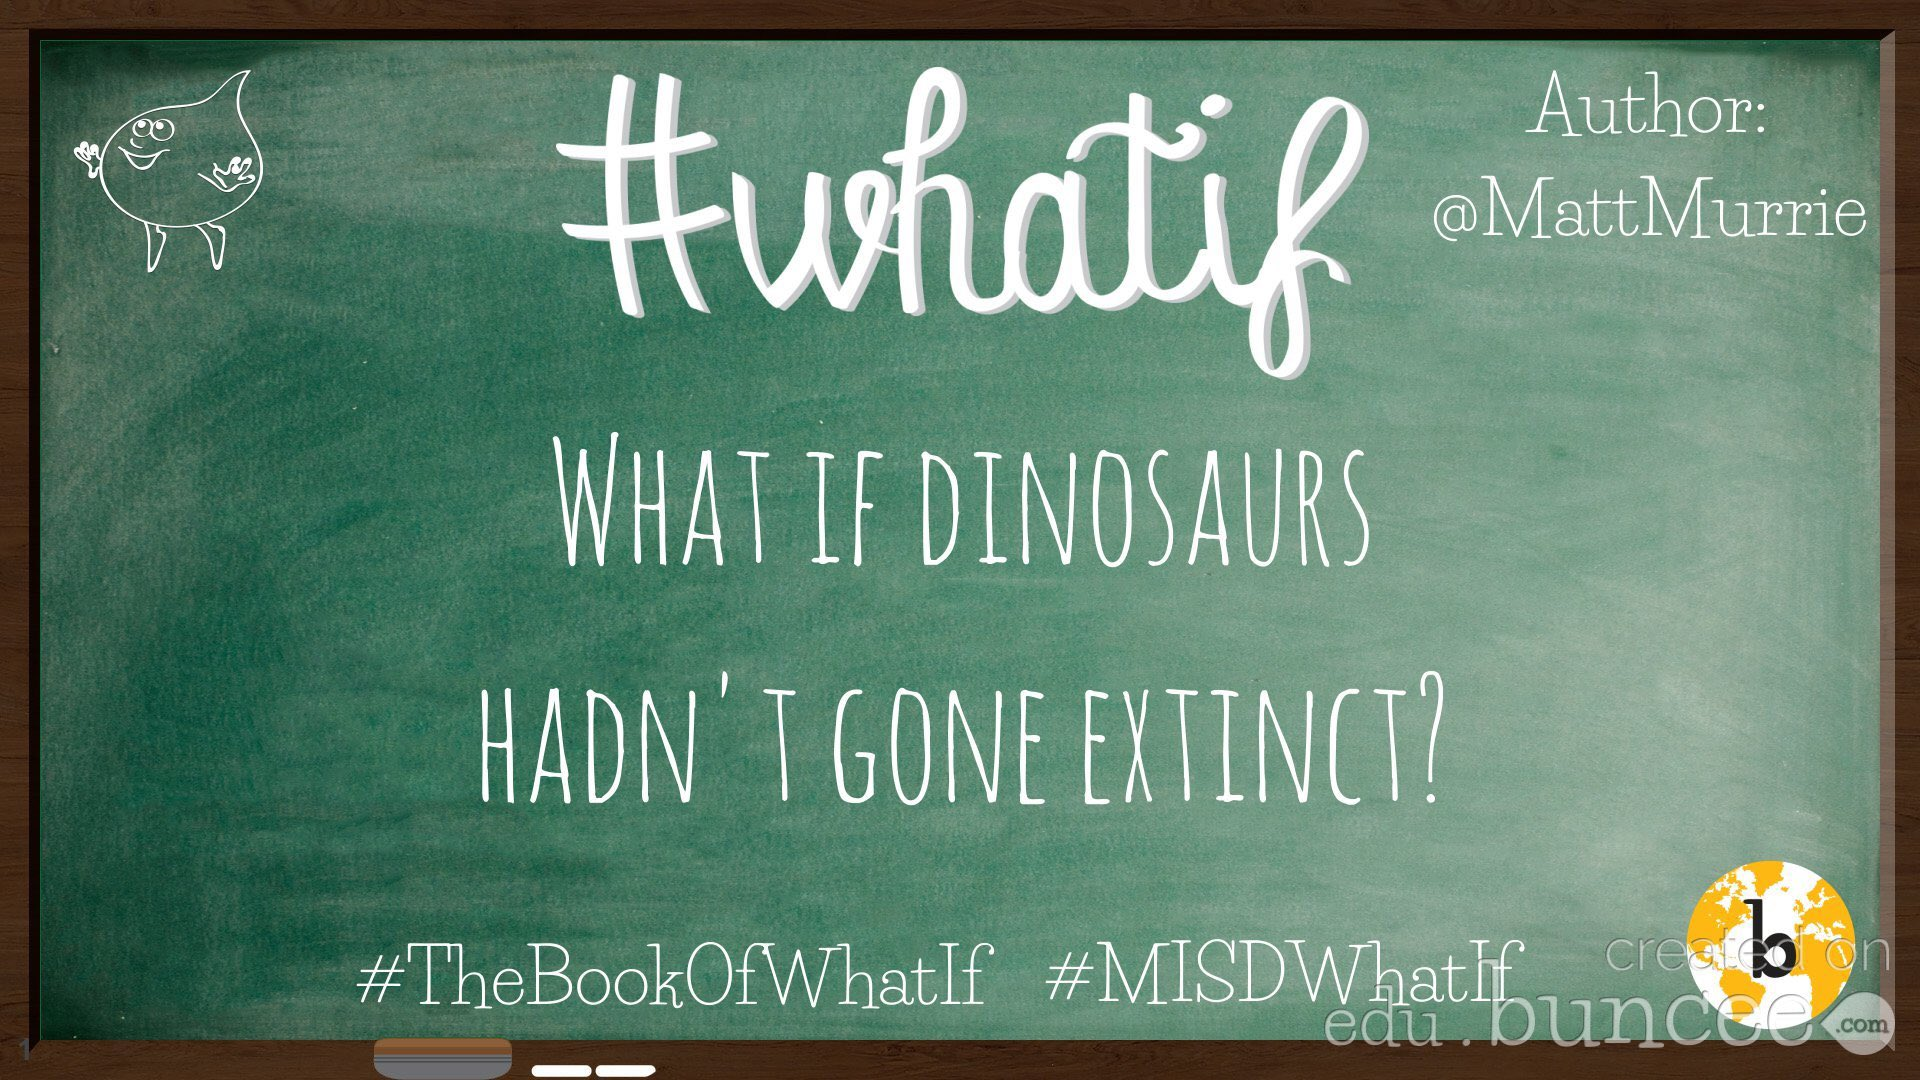 #WhatIf of the Week starts today!! #MISDWhatIf #CelebrateMonday https://t.co/KDHxTTv5og